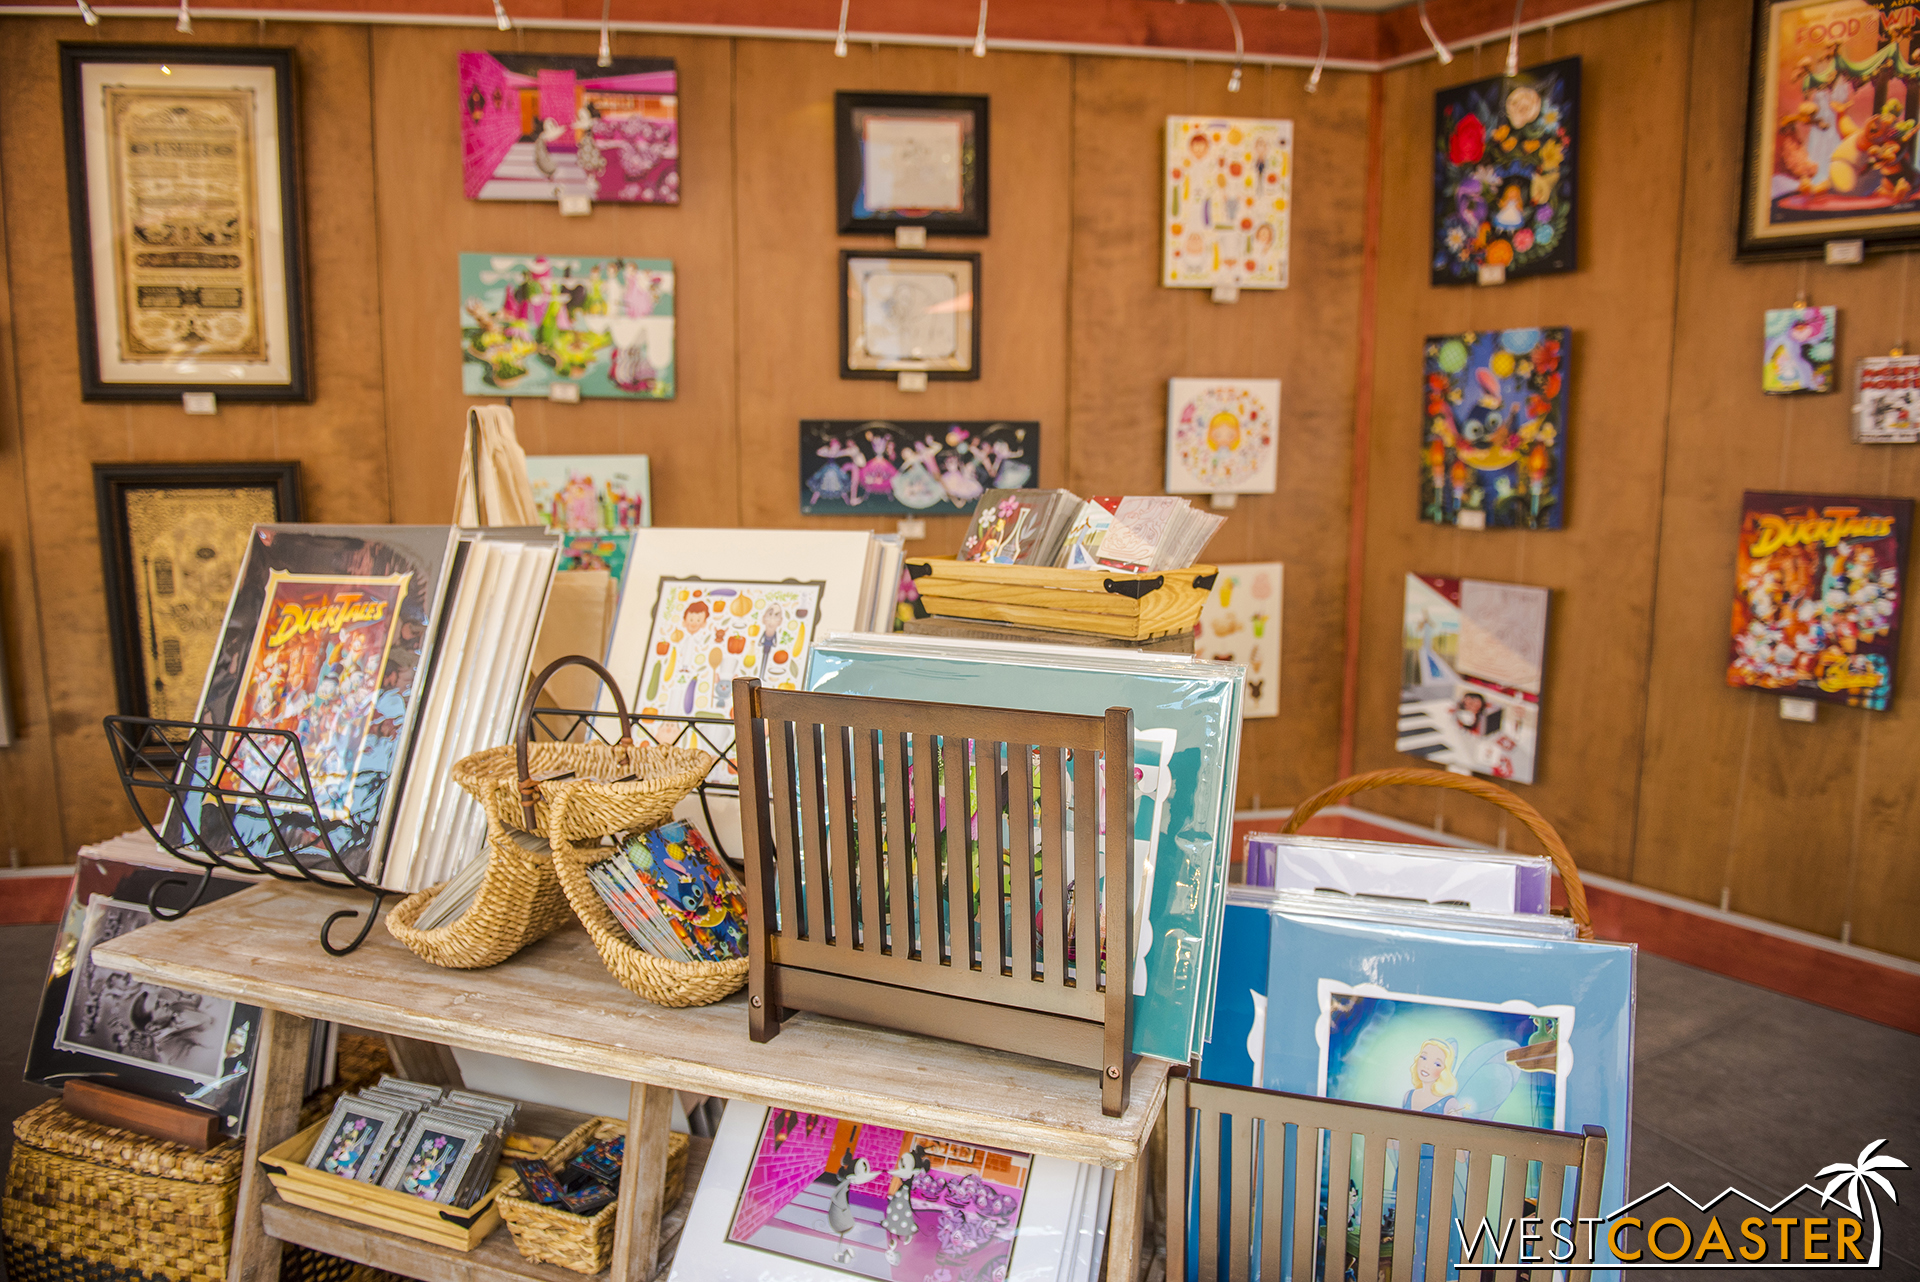 There is also a bit of a Wonderland Gallery pop up shop right adjacent, for Disney art fans.